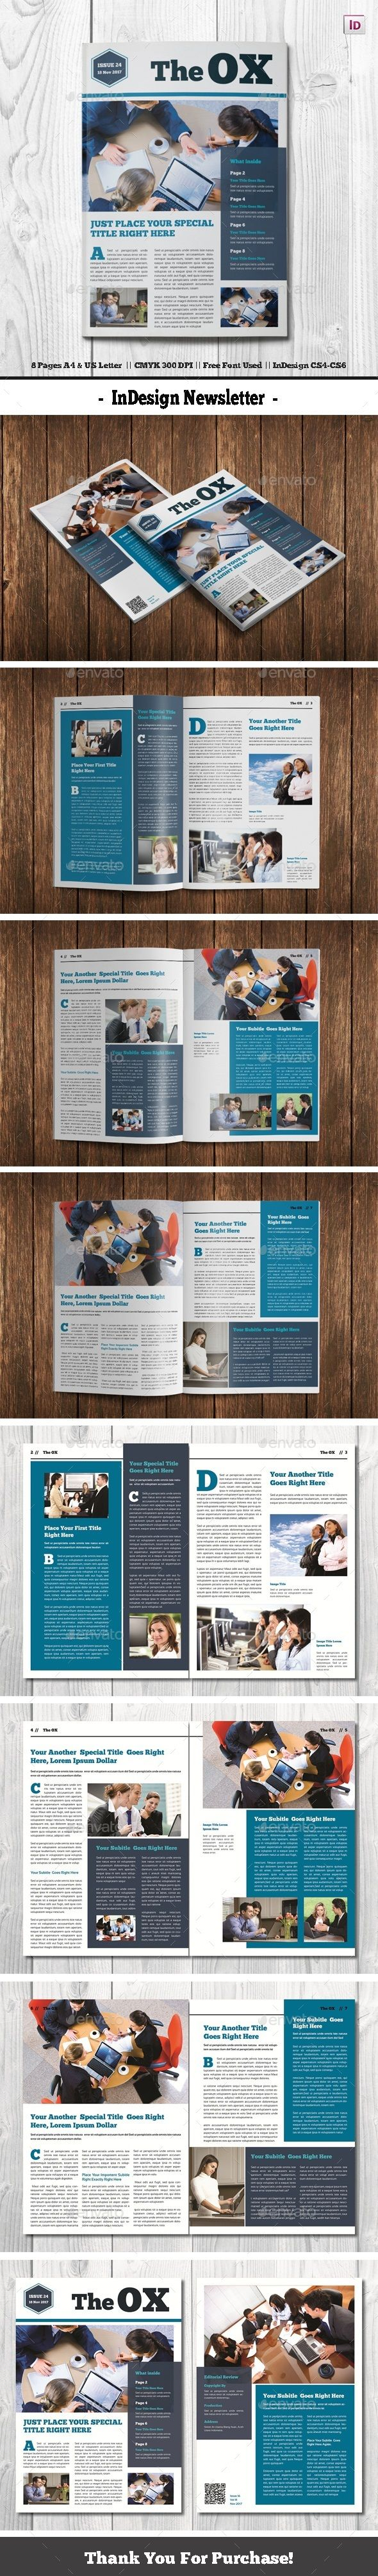 InDesign Newsletter Template InDesign INDD - 8 Pages A4 & US Letter Size